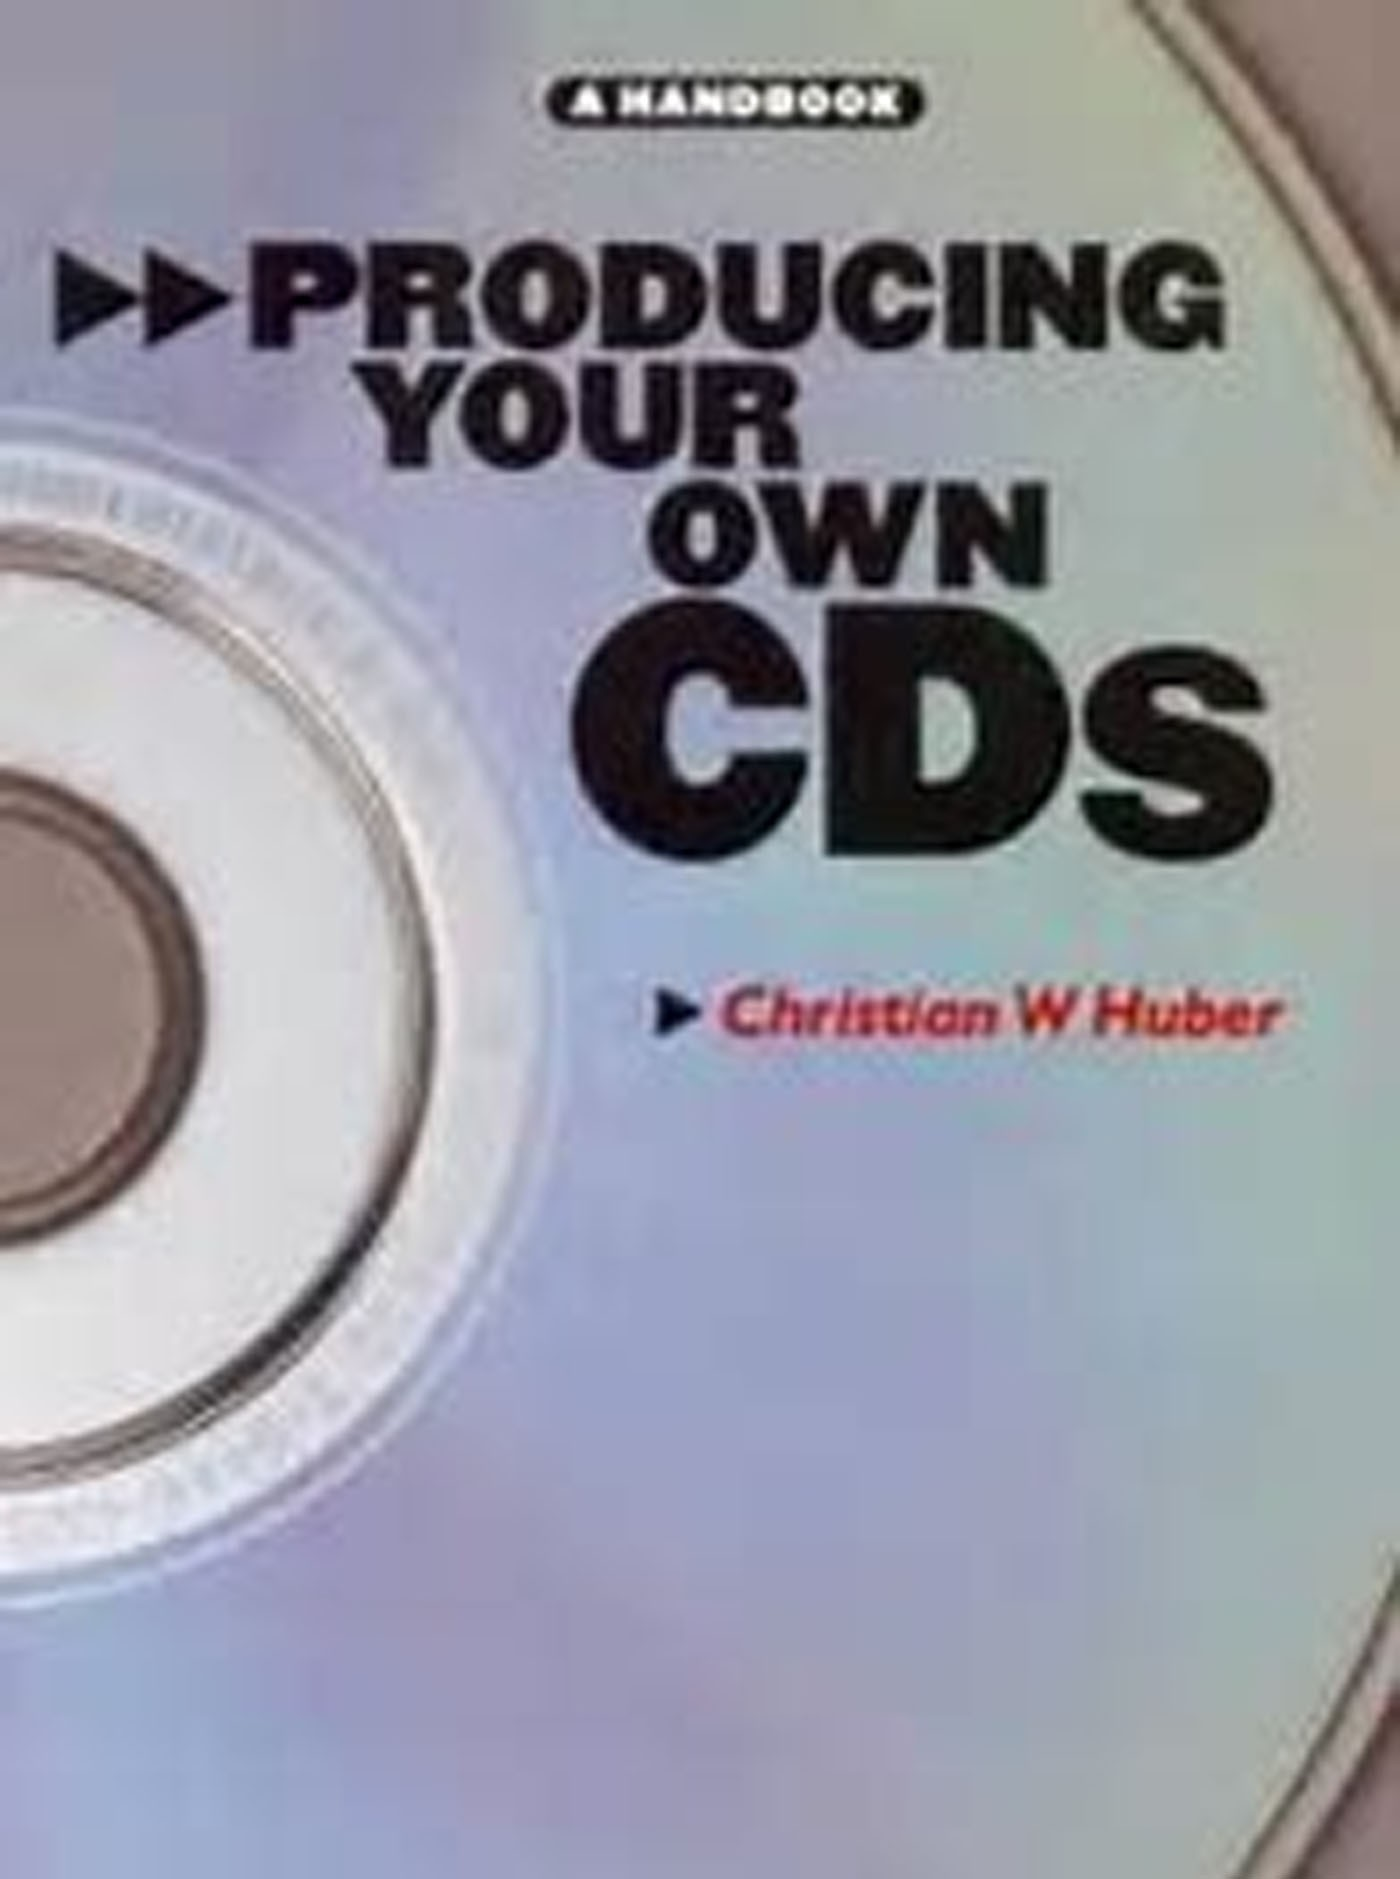 Producing Your Own CDs Book Handbook Guide Christian W Huber S05